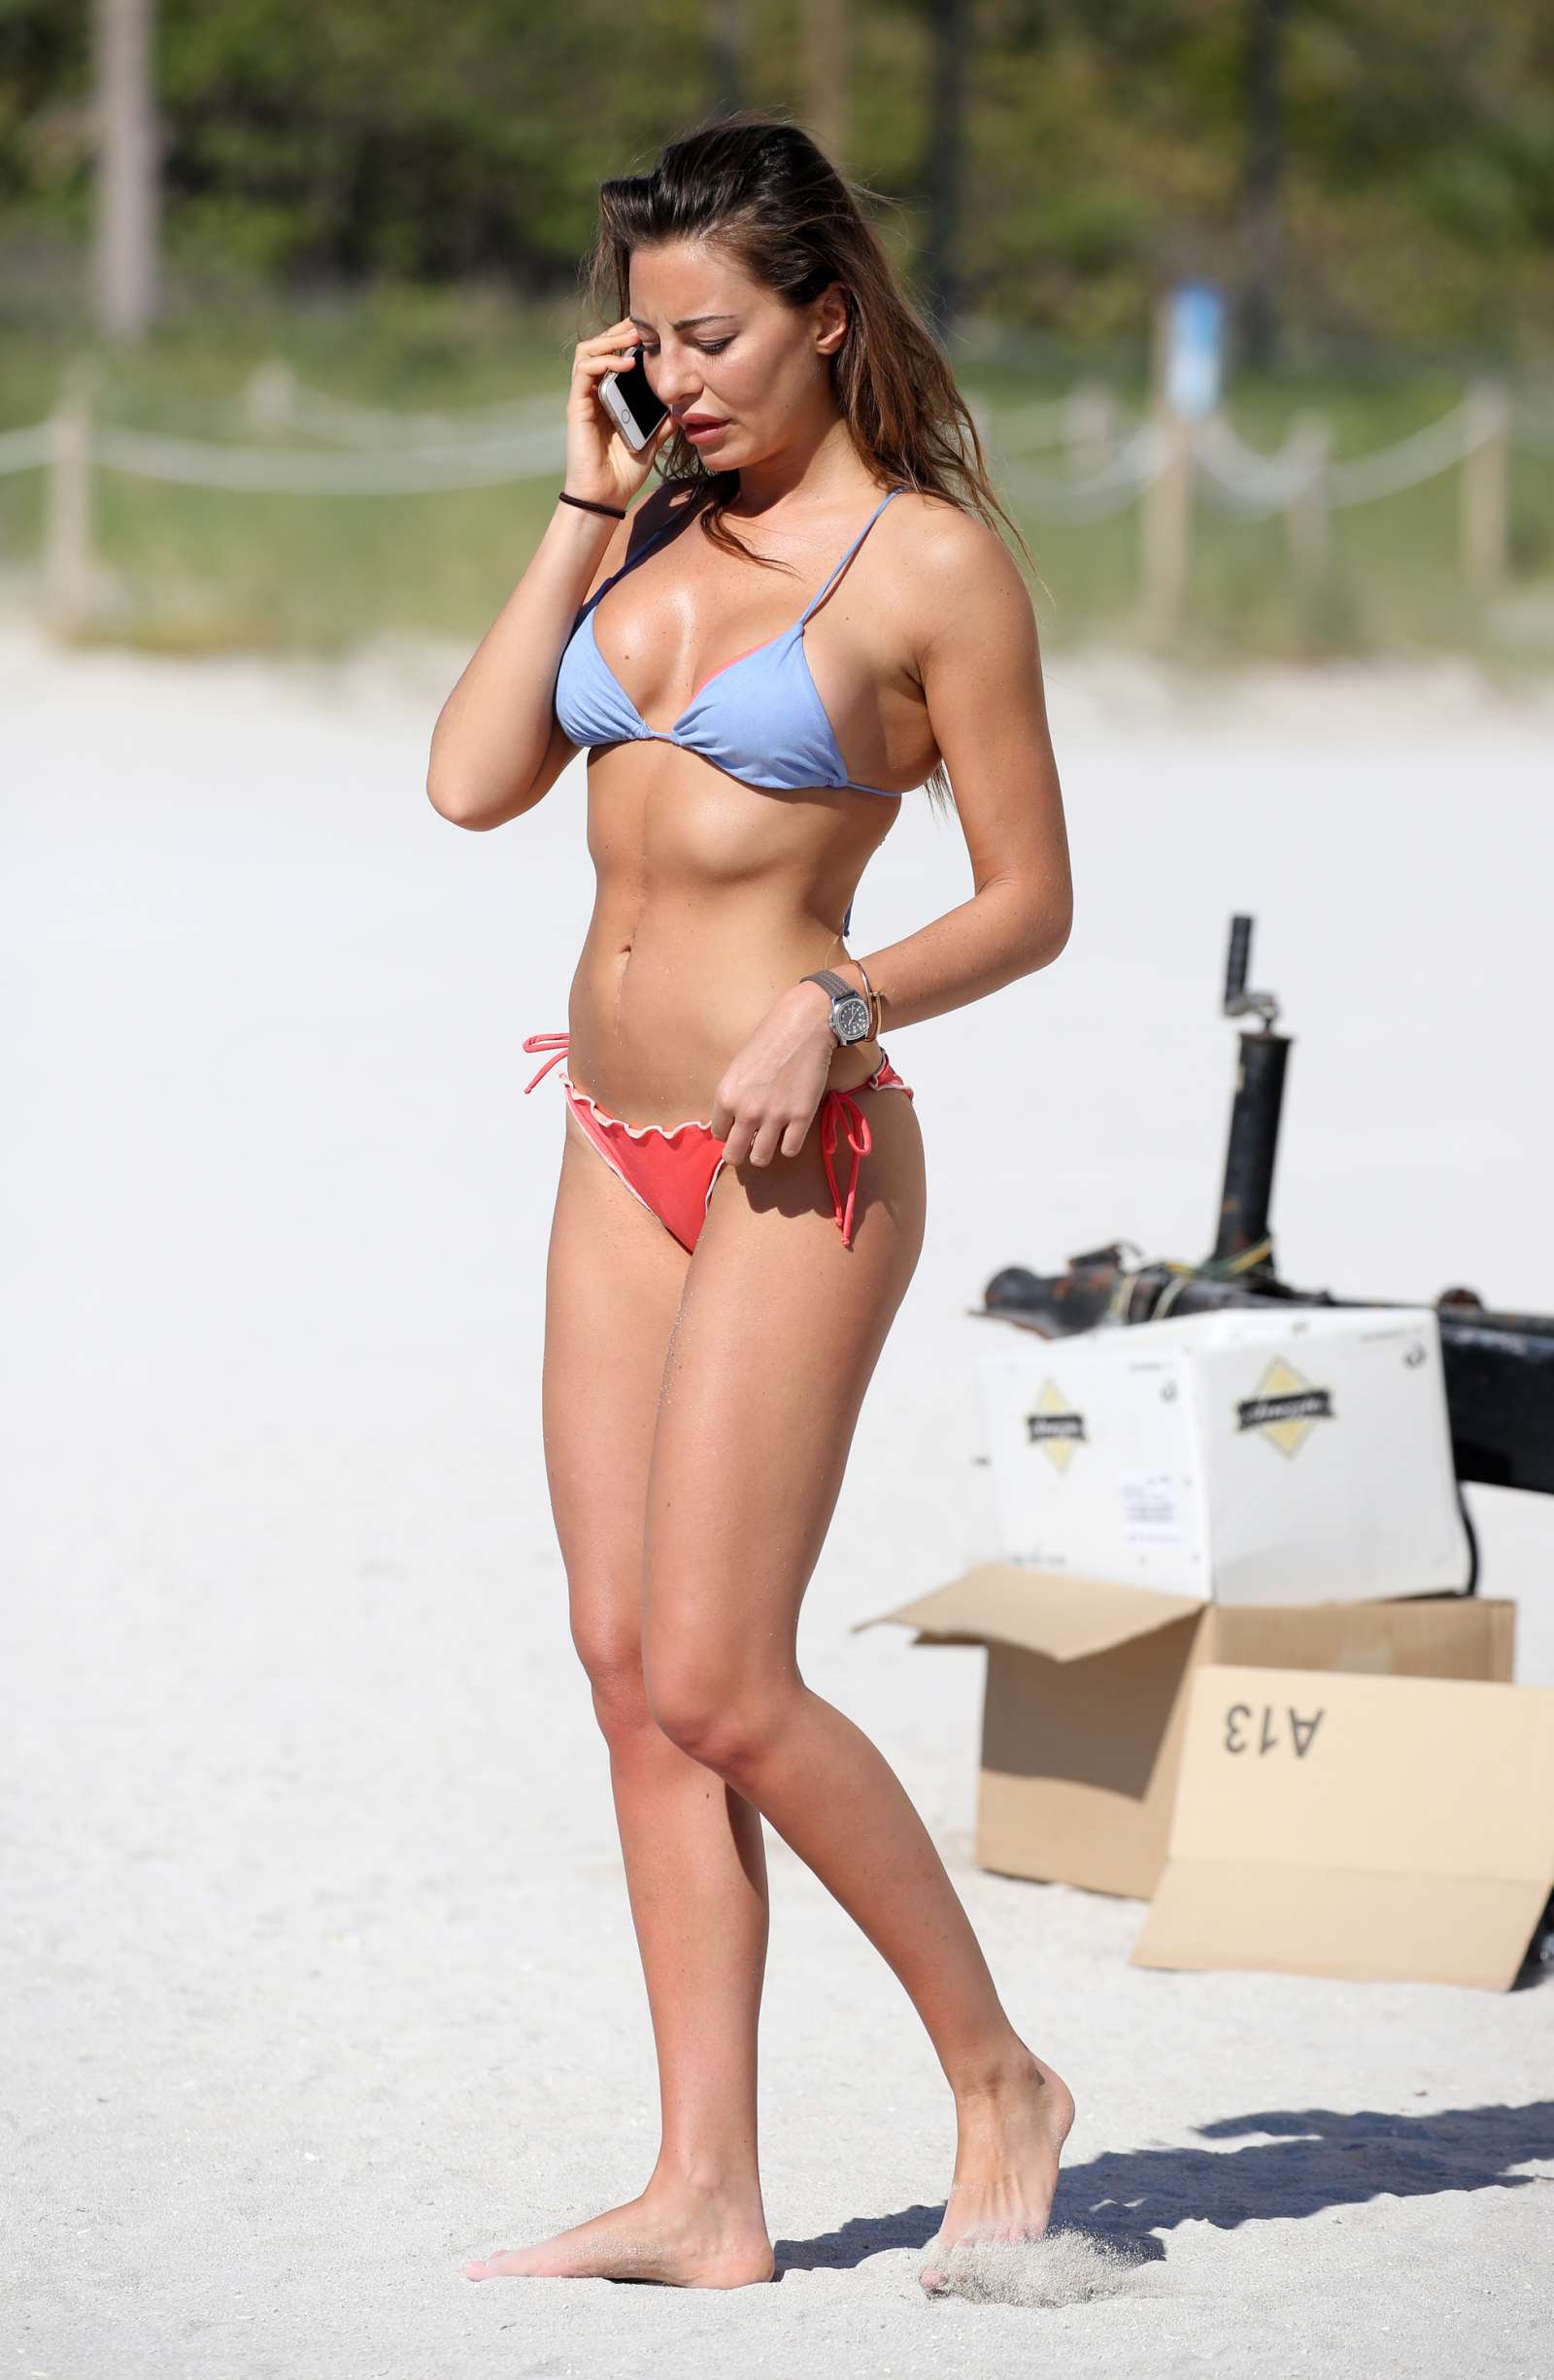 Alessia Tedeschi in Bikini on the beach in Miami